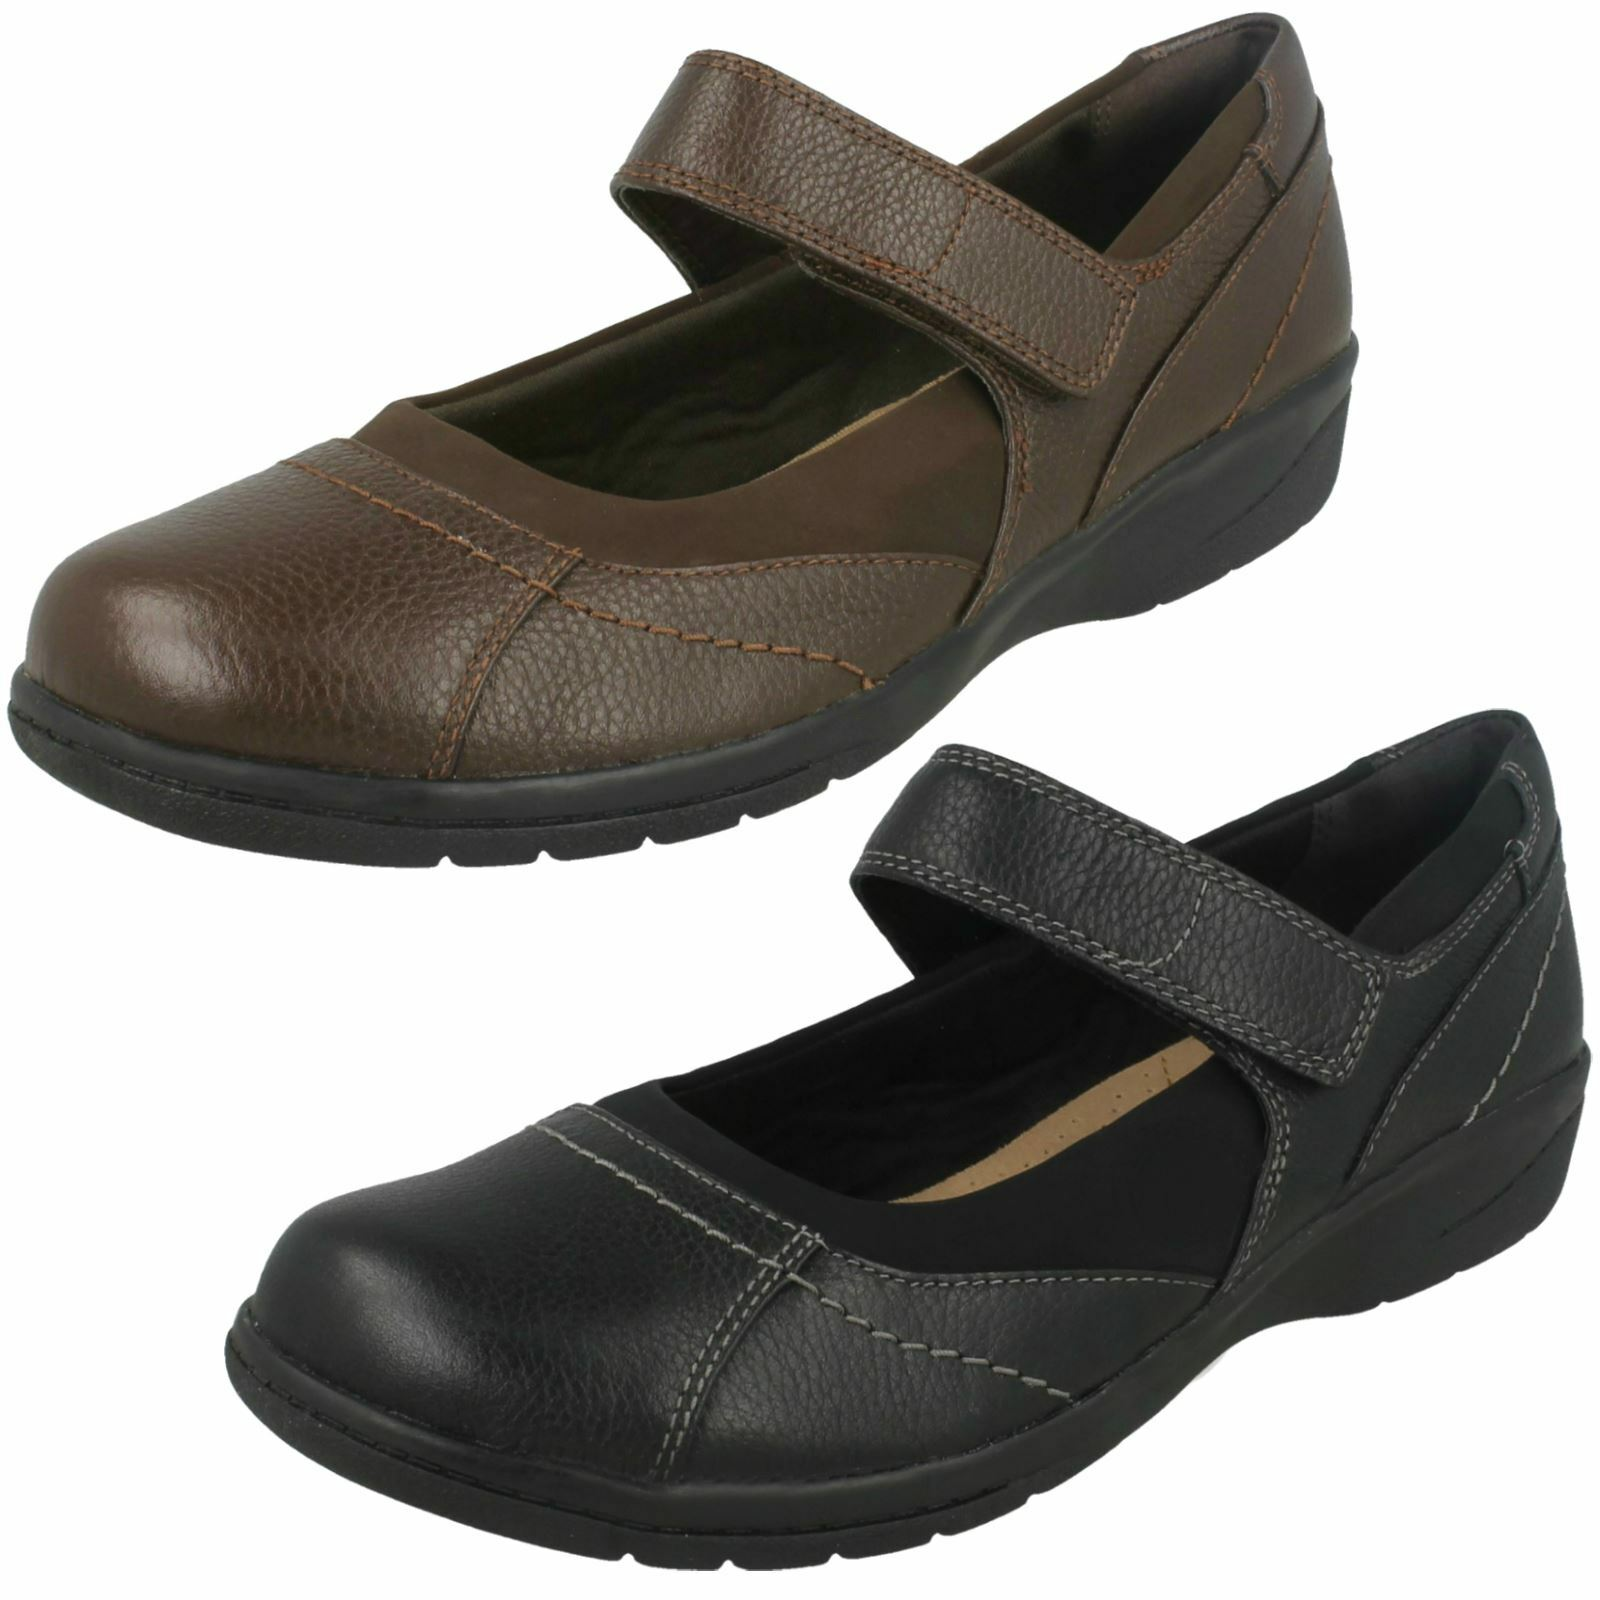 Ladies Clarks Cushioned Mary Jane Hook & Loop Leather Casual Shoes Cheyn Web